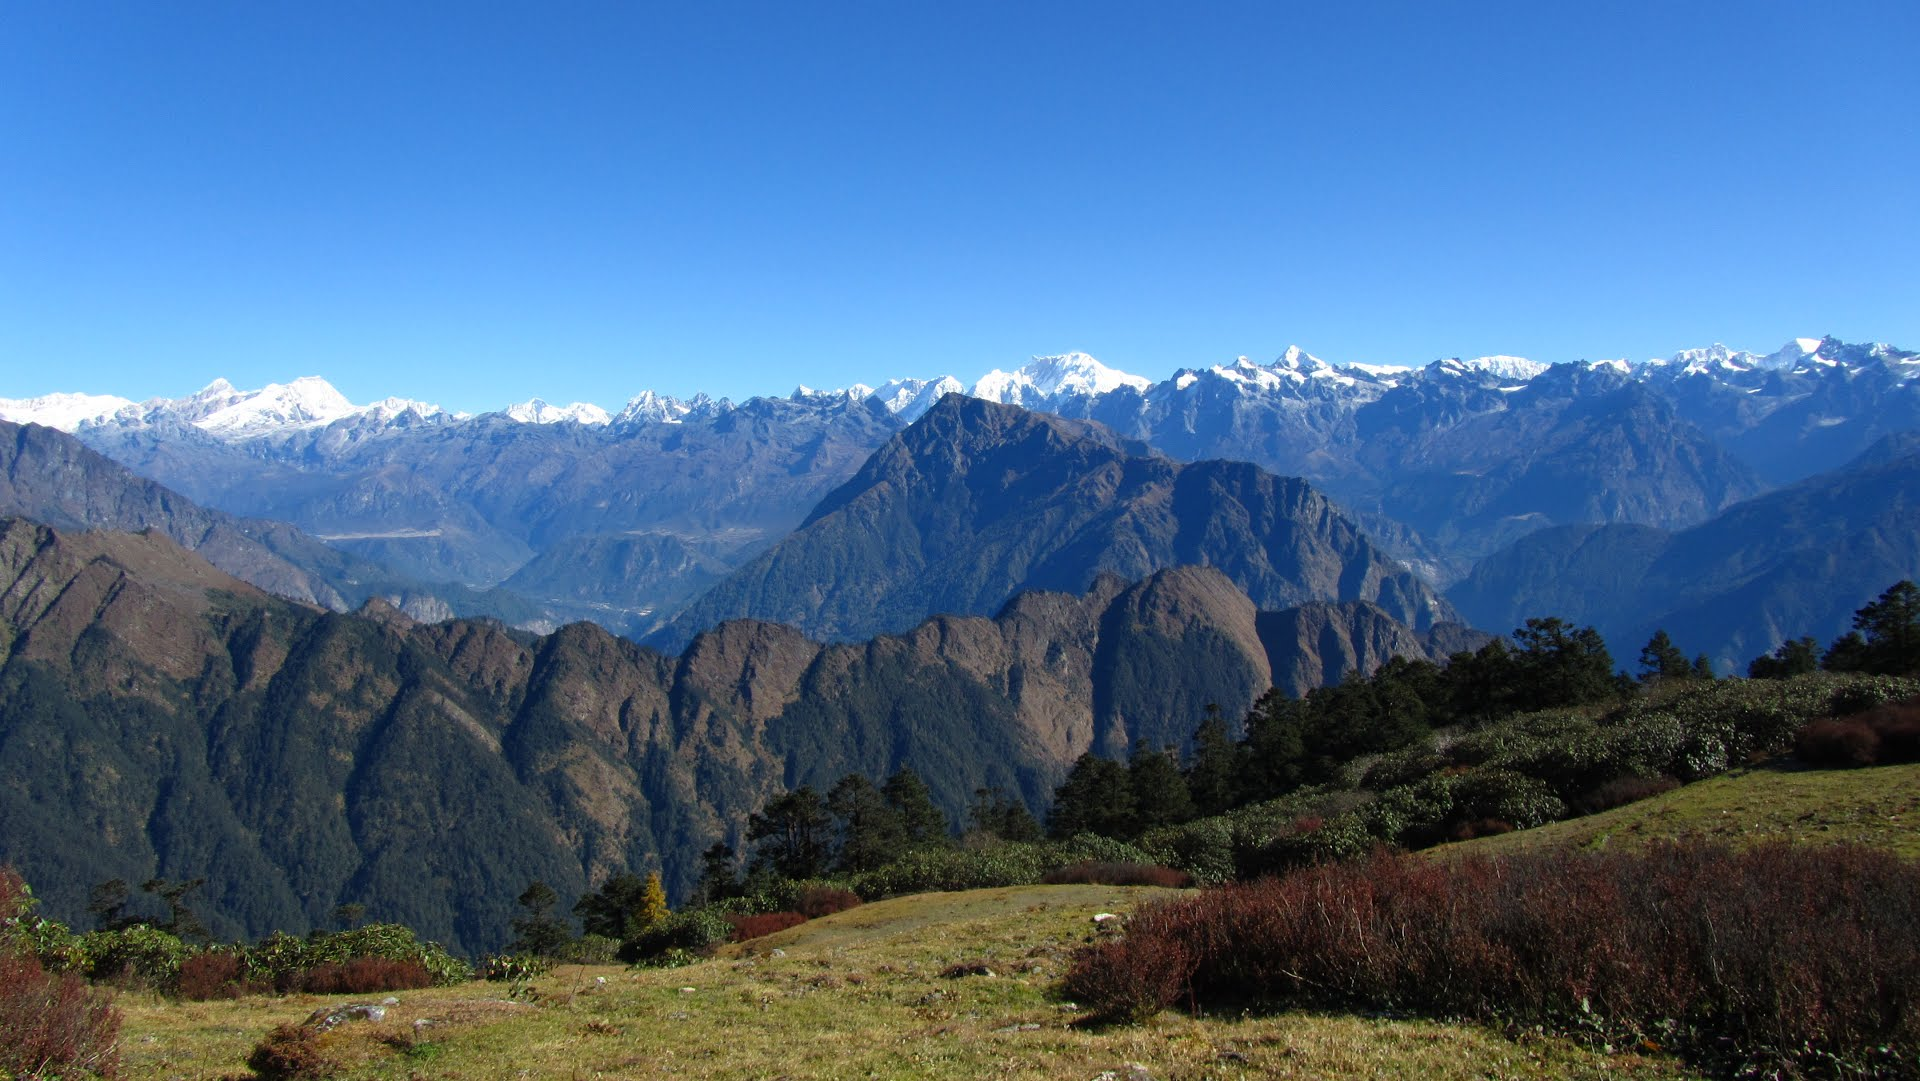 The view from Nepal, across the Himalayas into Tibet